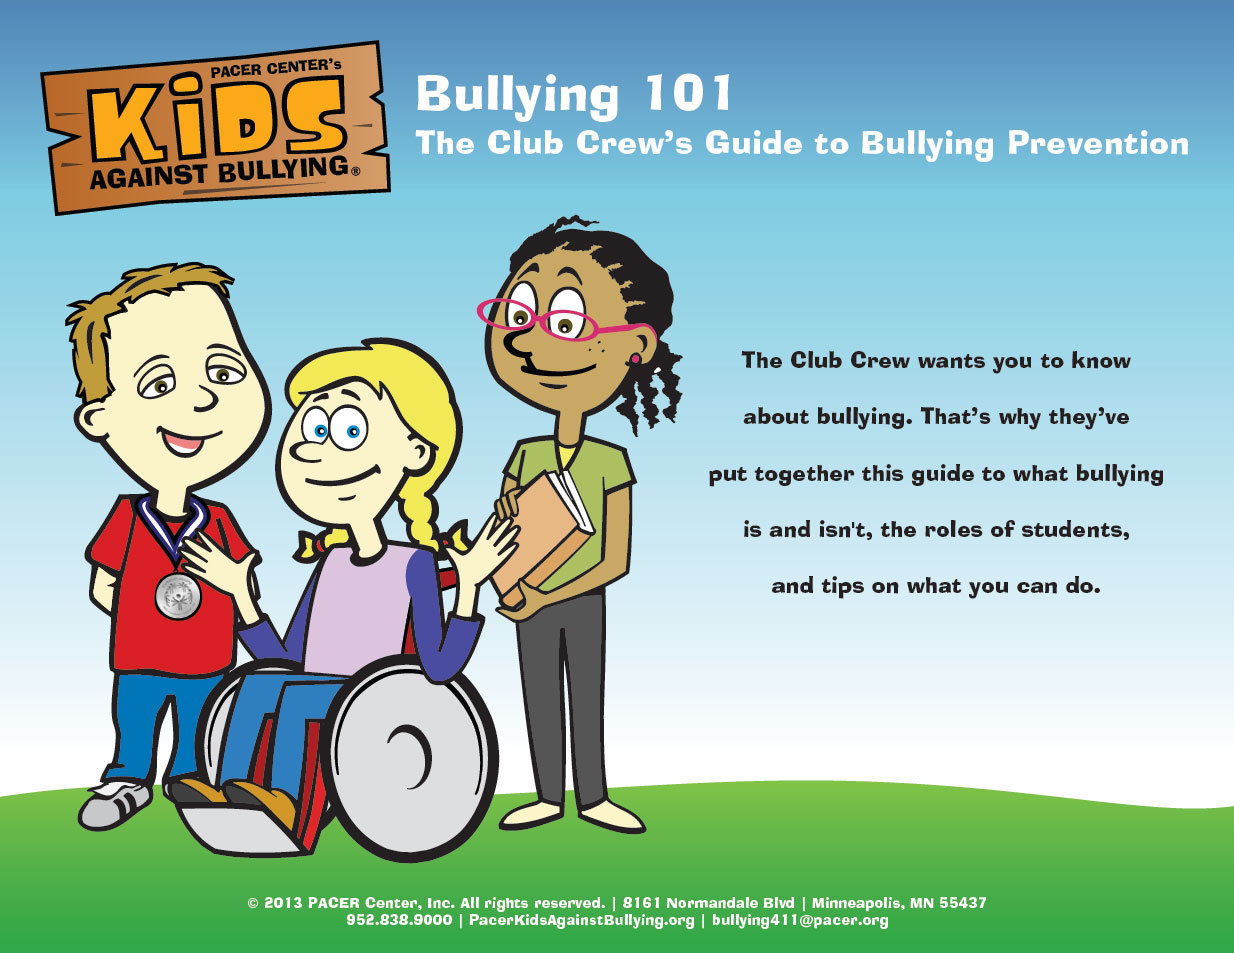 a description of bullying which may seem as a significant issue when compared to drug abuse or guns  Many schools sponsor the drug abuse resistance education (dare) program, a police officer-led initiative aiming to teach students how to say no we let dare handle the tough issue and move on as if there is nothing else to say.